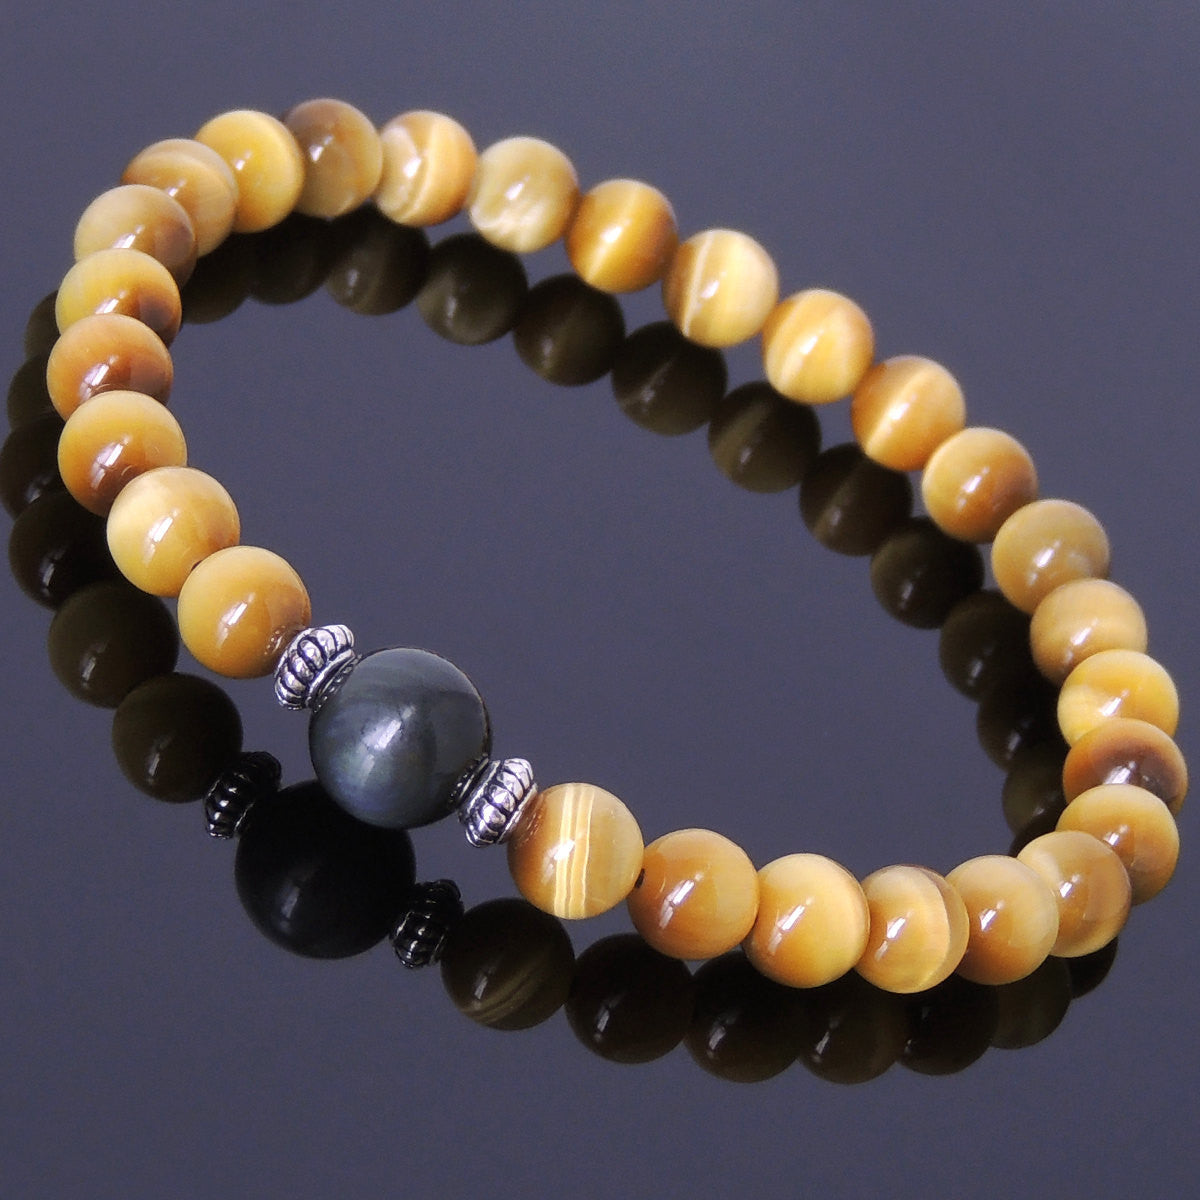 Meditation Chakra Healing Protection Crystals Tai Chi Golden Tiger Eye & Rainbow Black Obsidian Healing Gemstone Bracelet with S925 Sterling Silver Spacer Beads - Handmade by Gem & Silver BR413